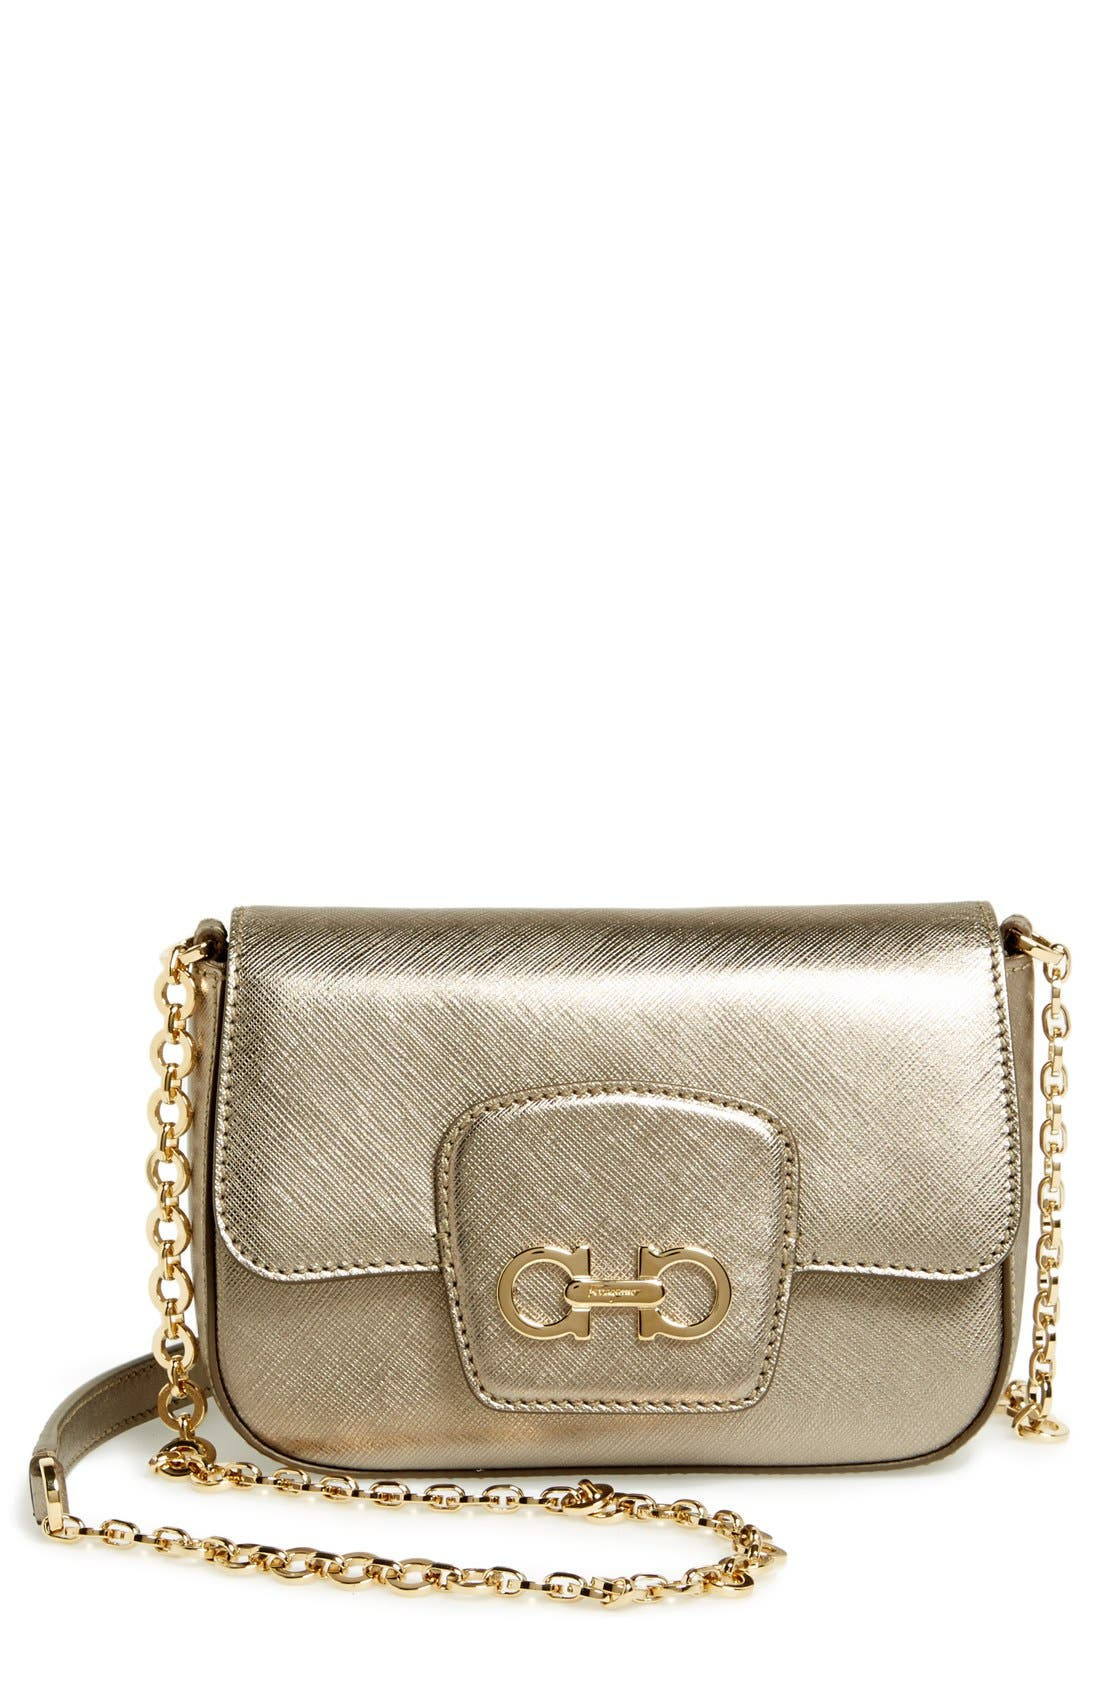 Main Image - Salvatore Ferragamo 'Paris Chain' Saffiano Leather Shoulder Bag